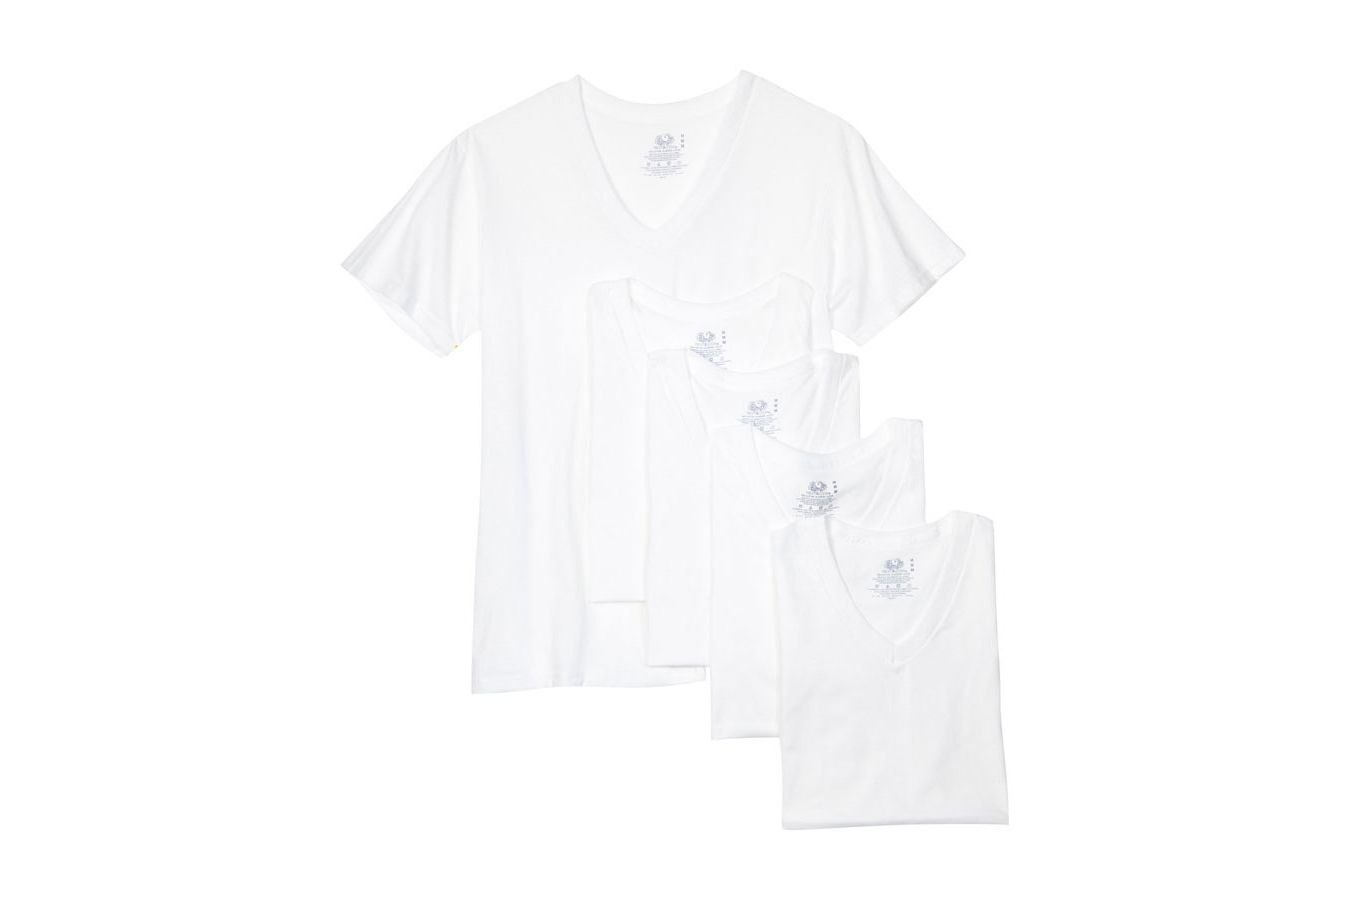 Plain white shirts cheapest t shirt jpg - Plain White Shirts Cheapest T Shirt Jpg 37